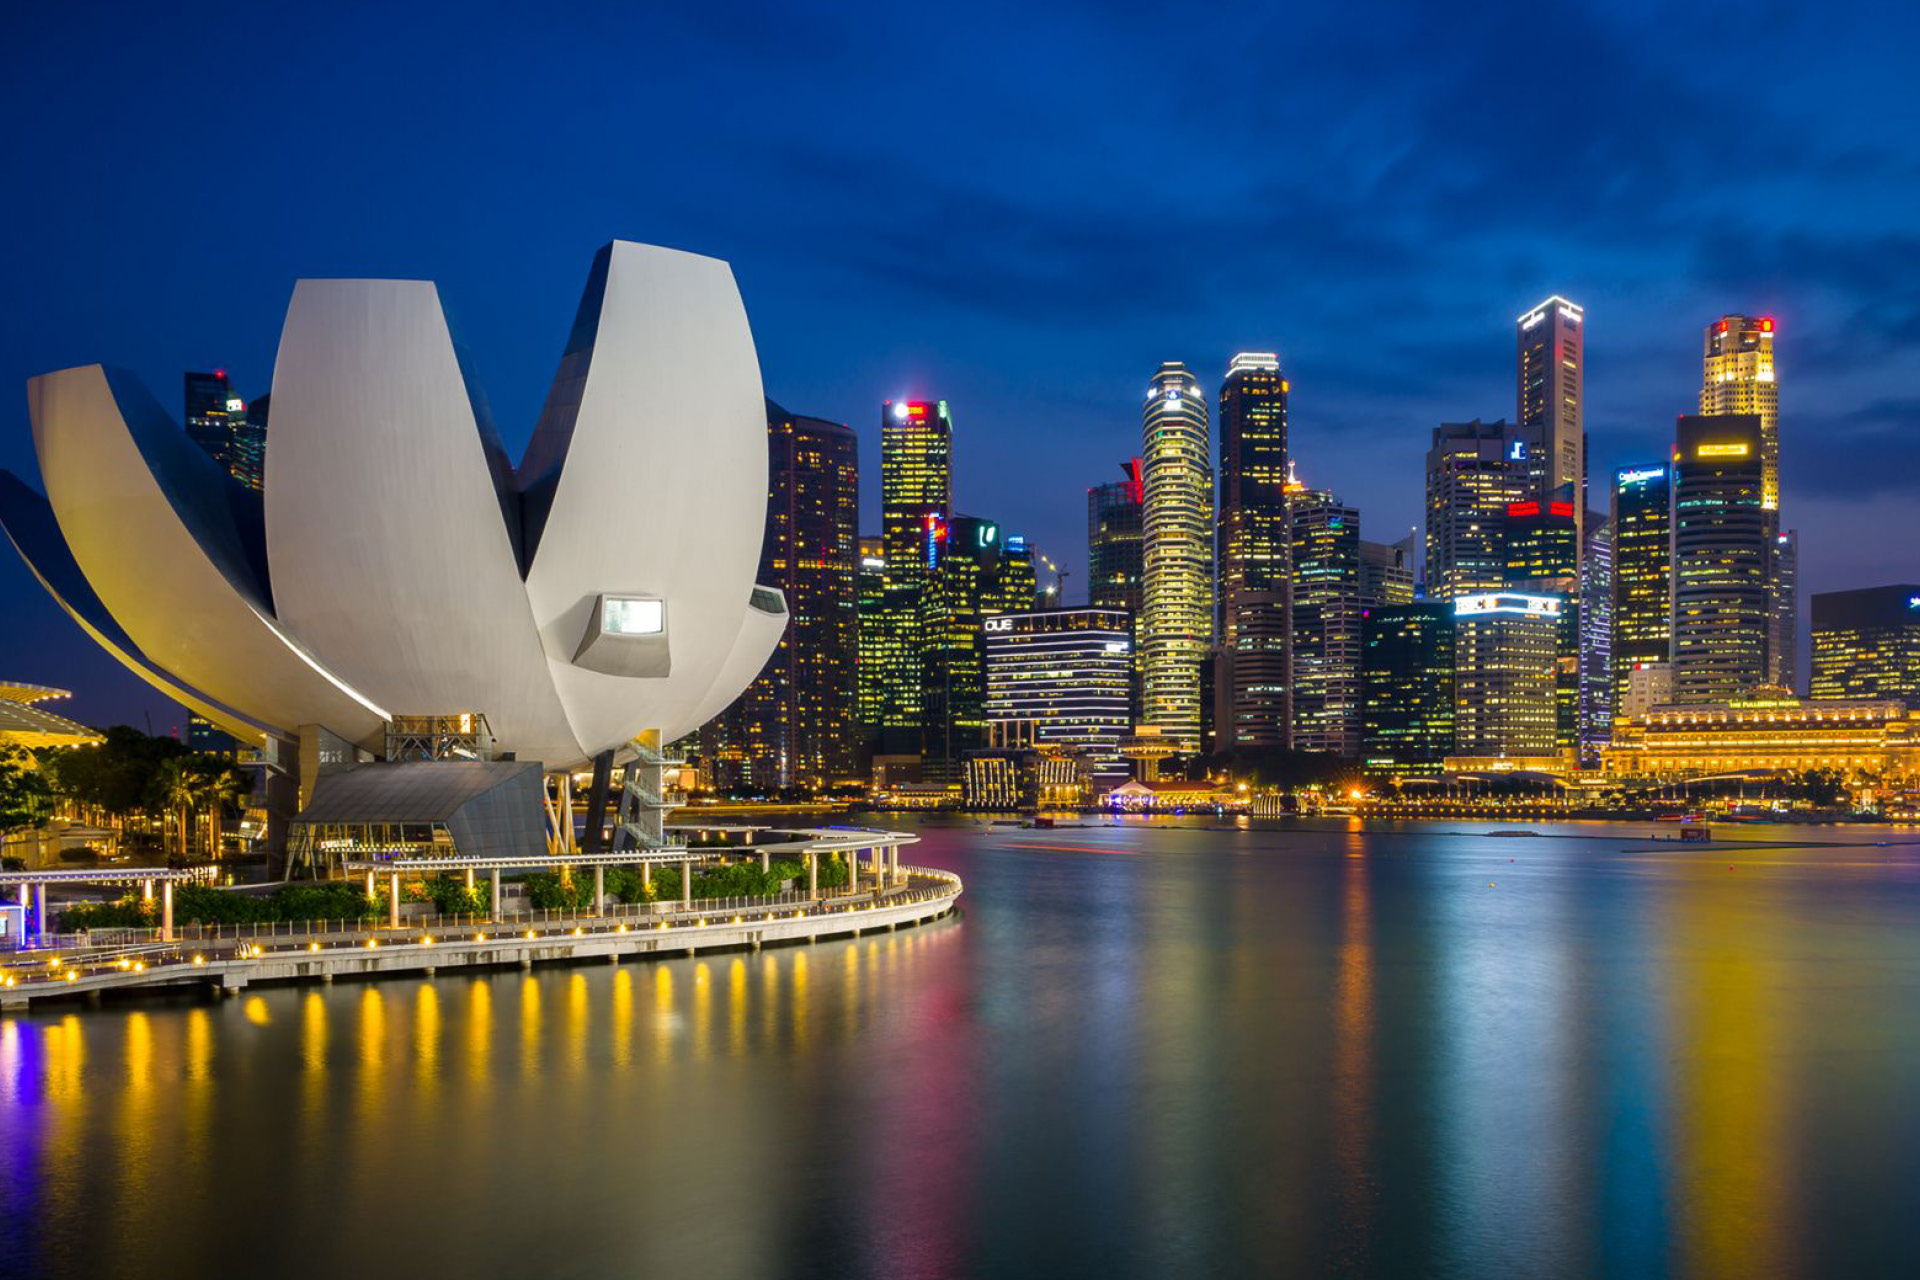 Singapore Main images-12.jpg